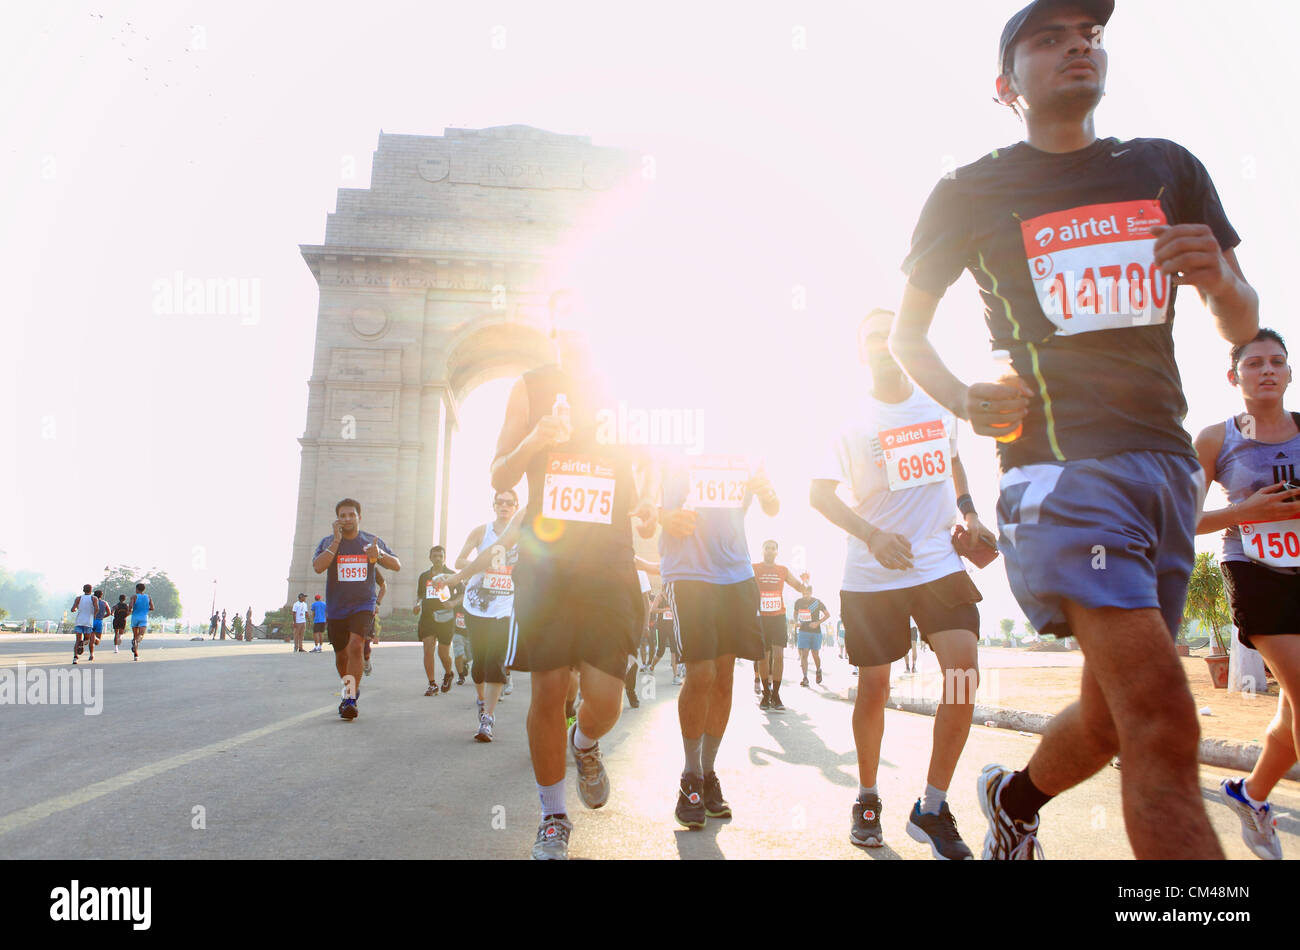 Sep. 30, 2012 - New Delhi, India - Delhi residents participate in the New Delhi Half Marathon as they run by the Stock Foto